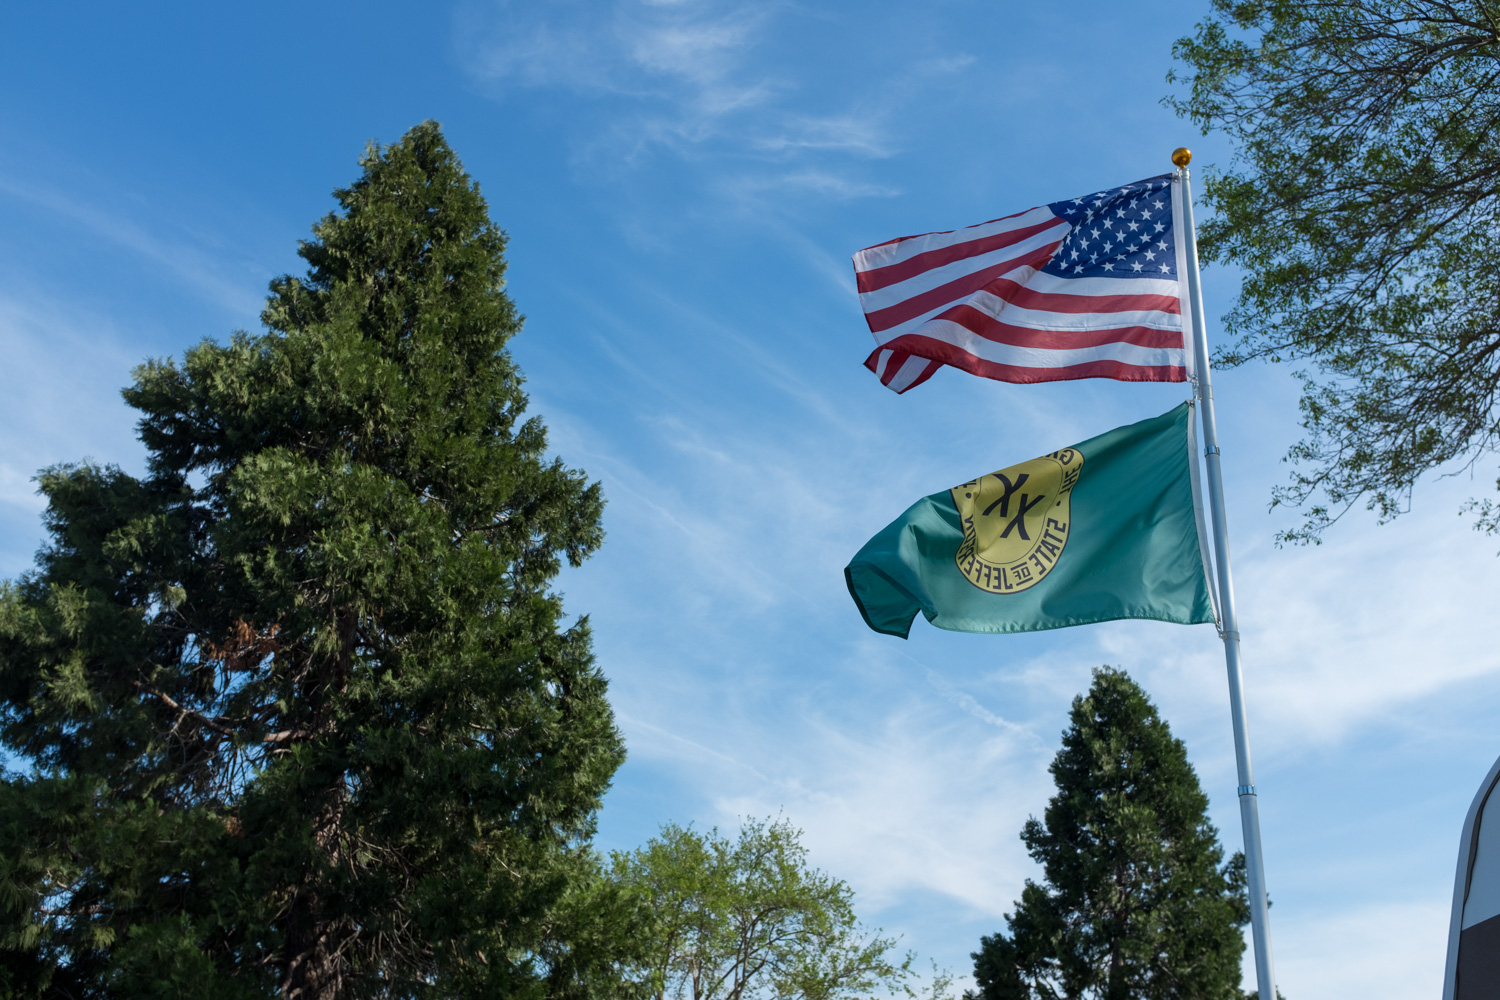 State of Jefferson Flag, Red Bluff.